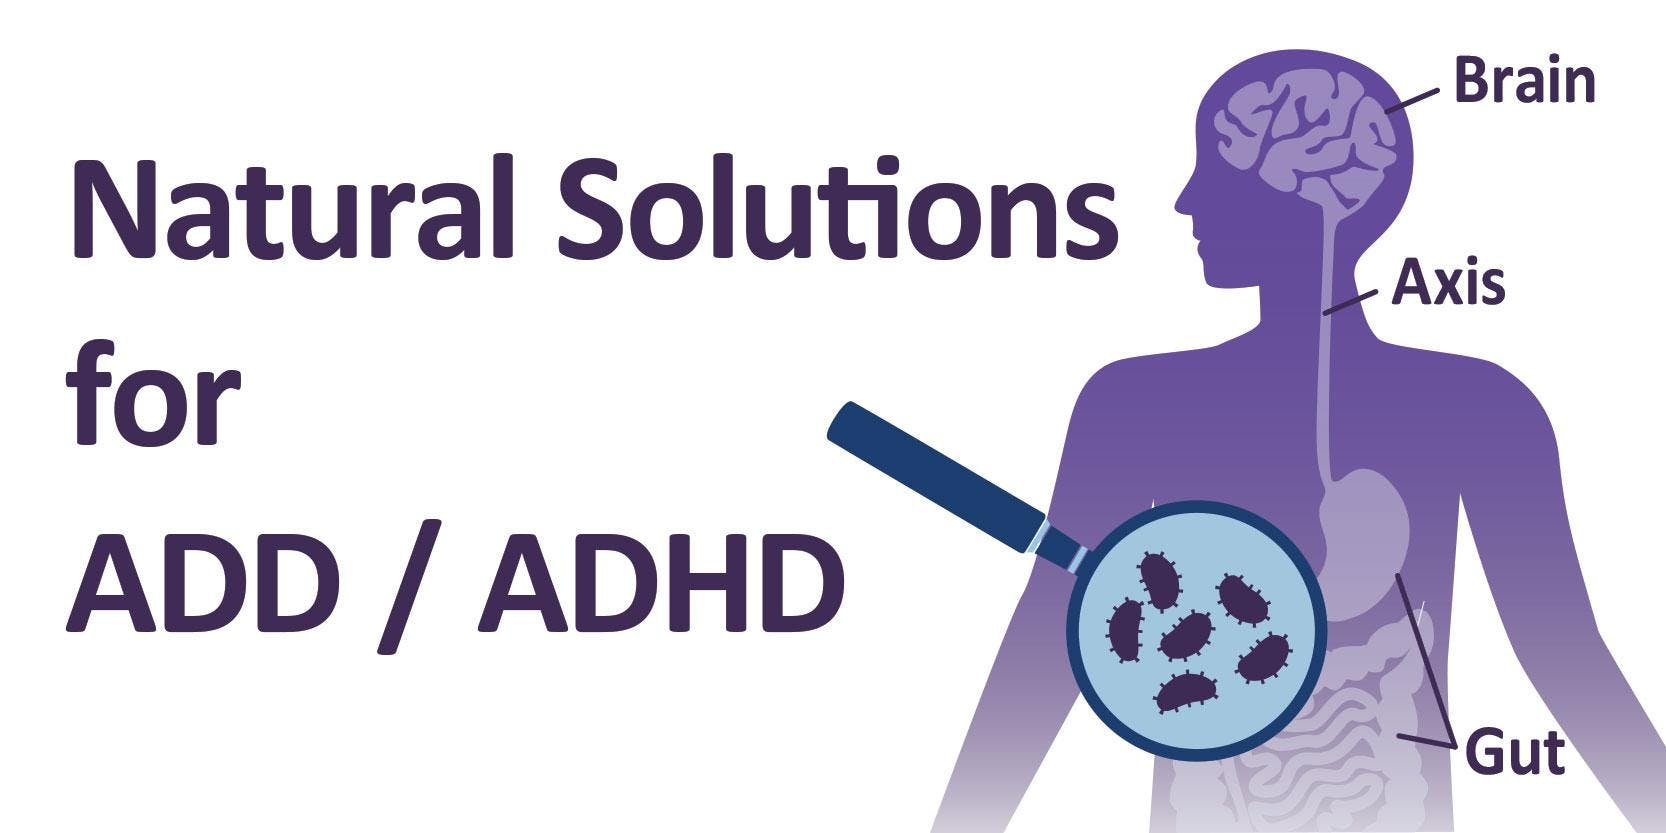 Natural Solutions for ADD / ADHD - Scottsdale, AZ